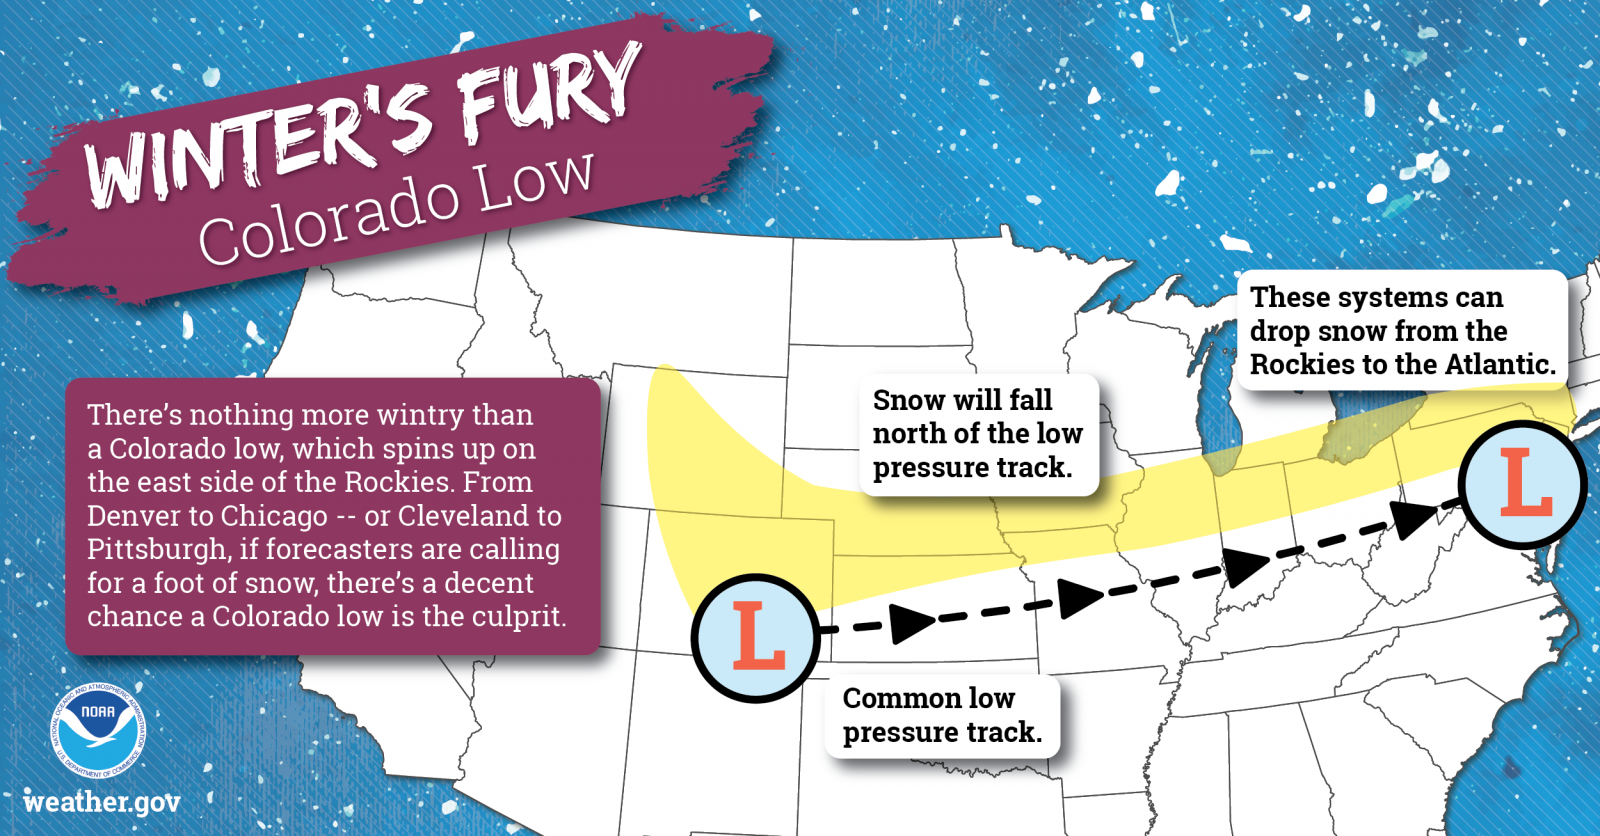 Winter's Fury - Colorado Low: There's nothing more wintry than a Colorado low, which spins up on the east side of the Rockies. From Denver to Chicago -- or Cleveland to Pittsburg, if forecasters are calling for a foot of snow, there's a decent chance a Colorado low is the culprit.